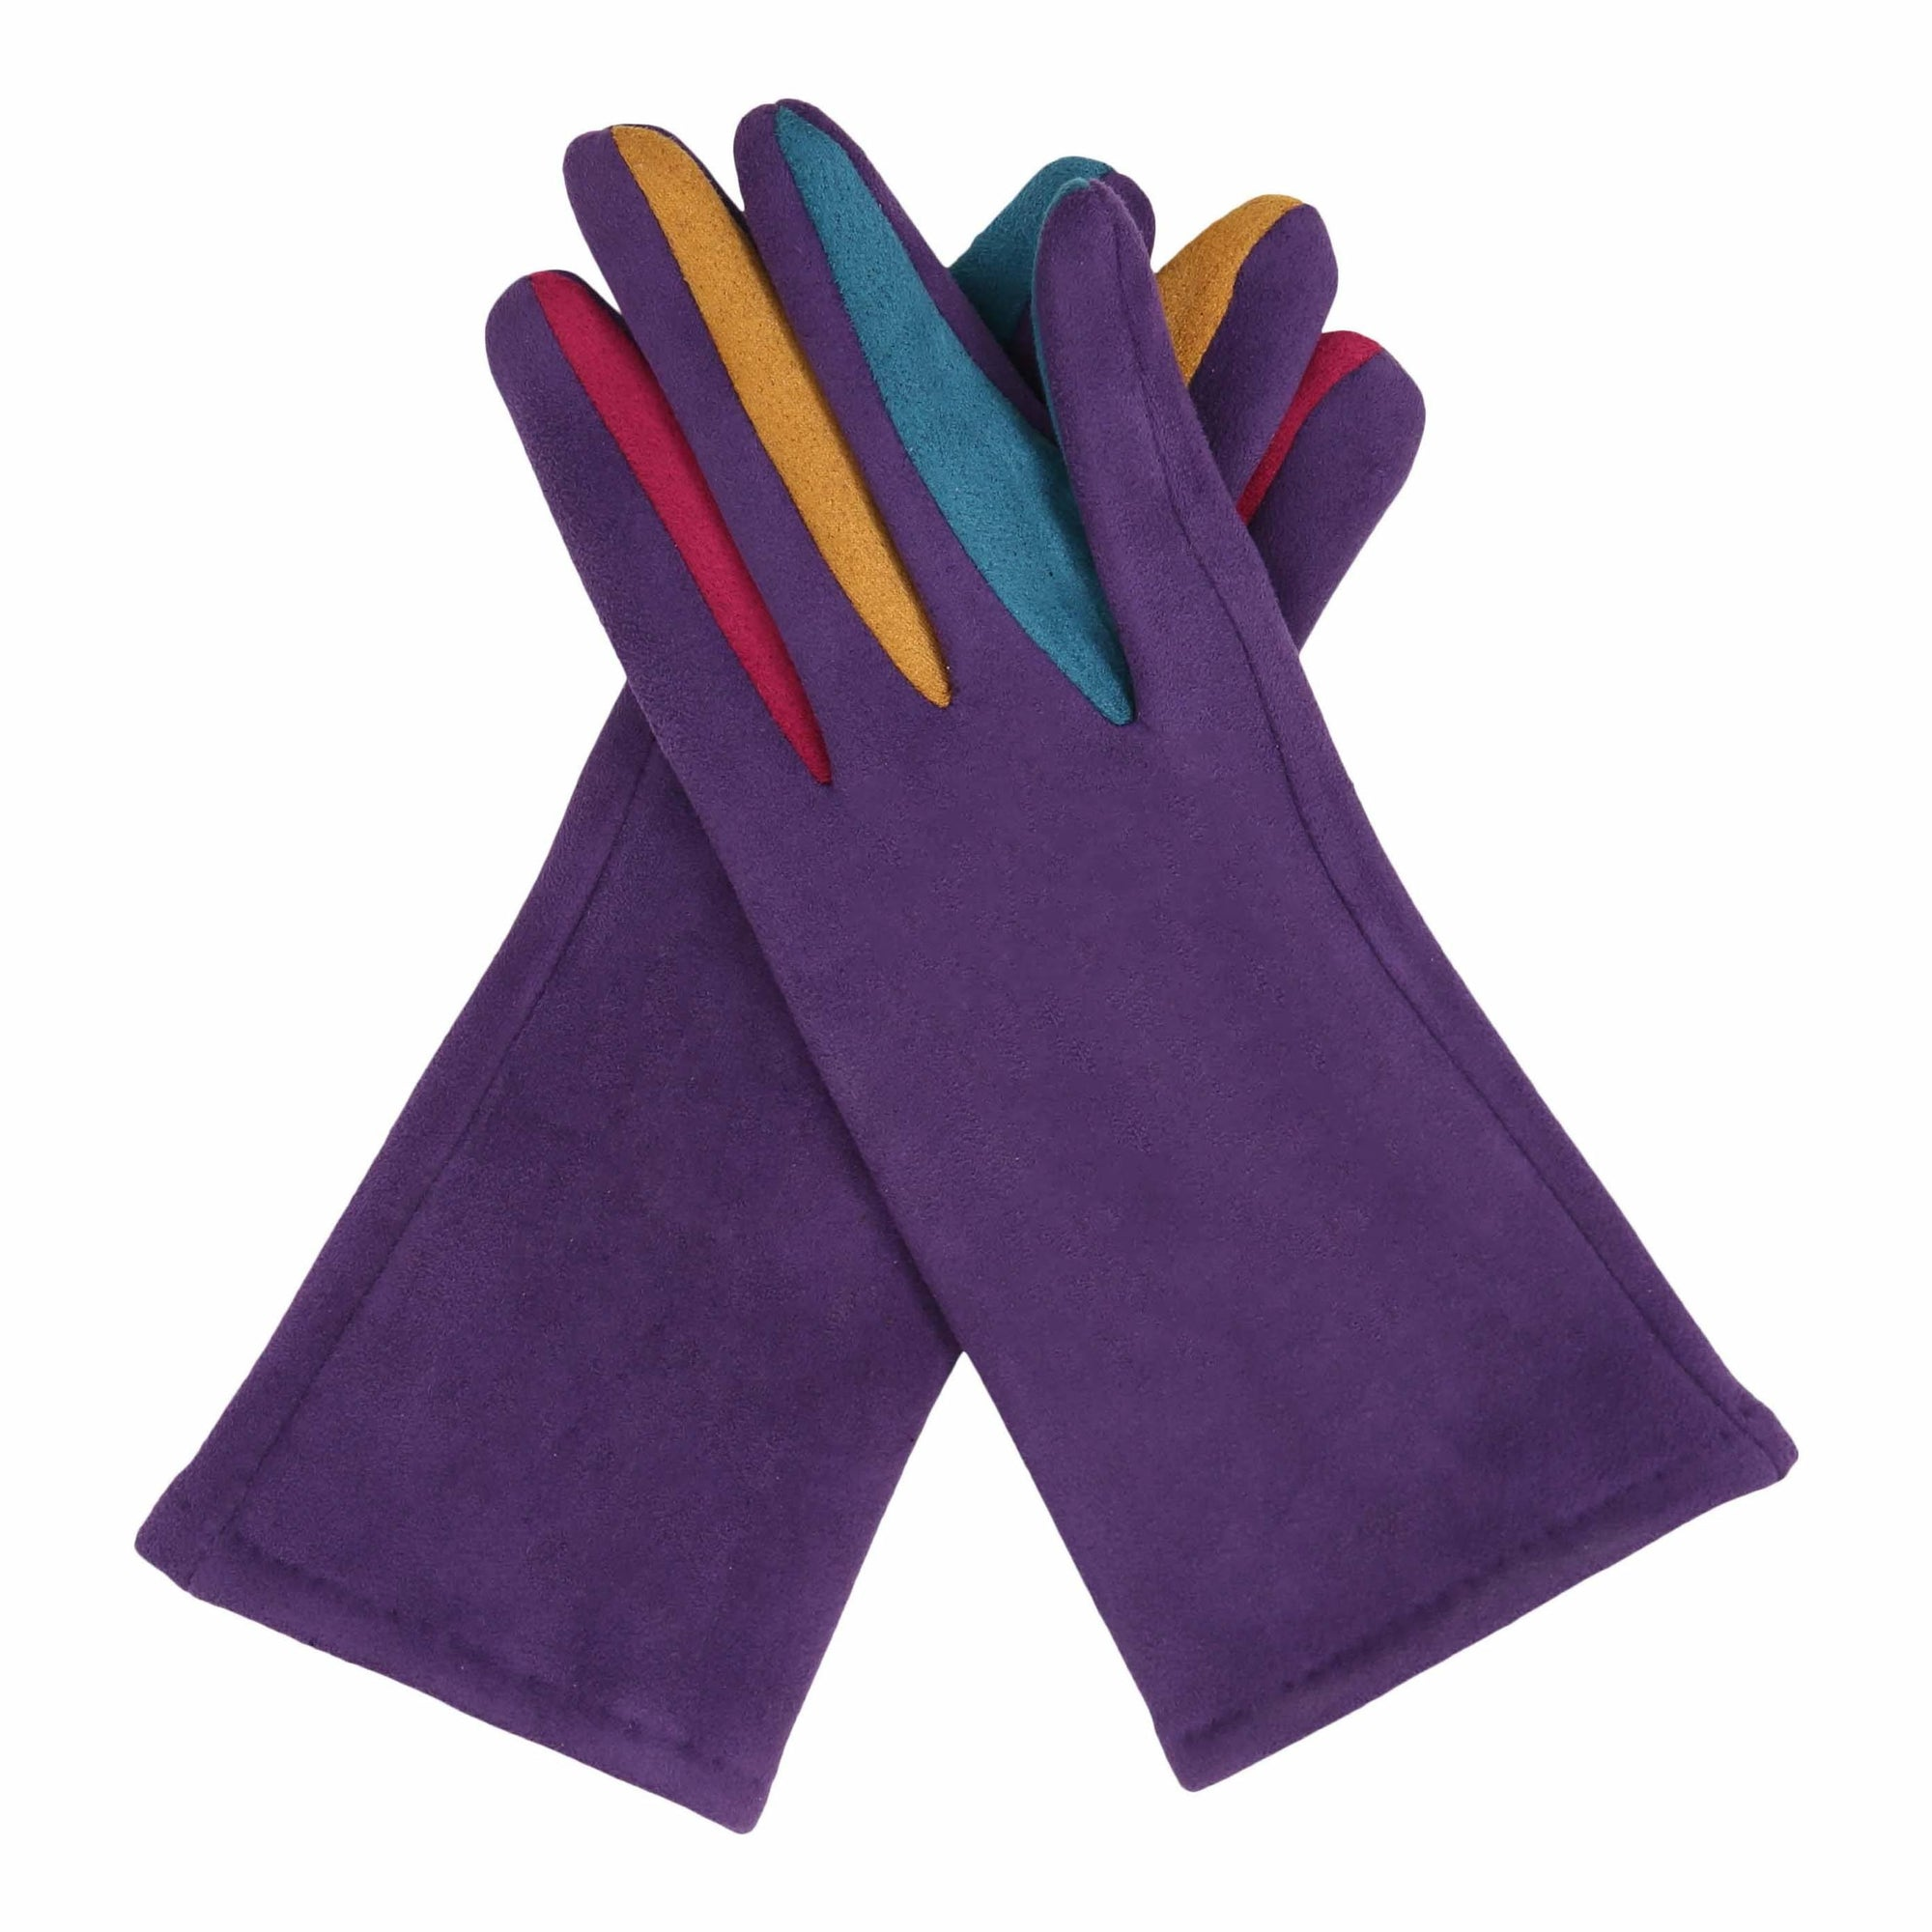 Pair of purple texting gloves with multicolored gussets between each finger.